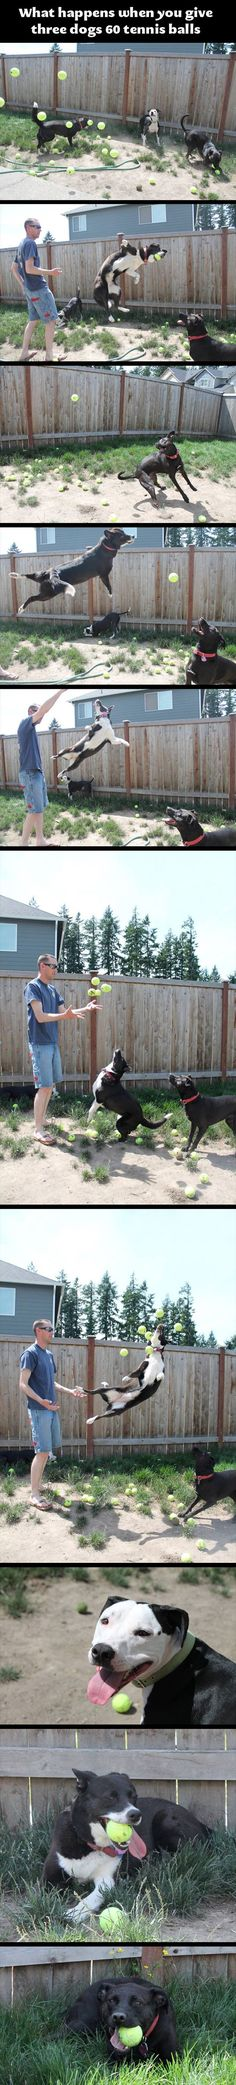 This Is What Happens When You Give 3 Dogs 60 Tennis Balls – 10 Pics